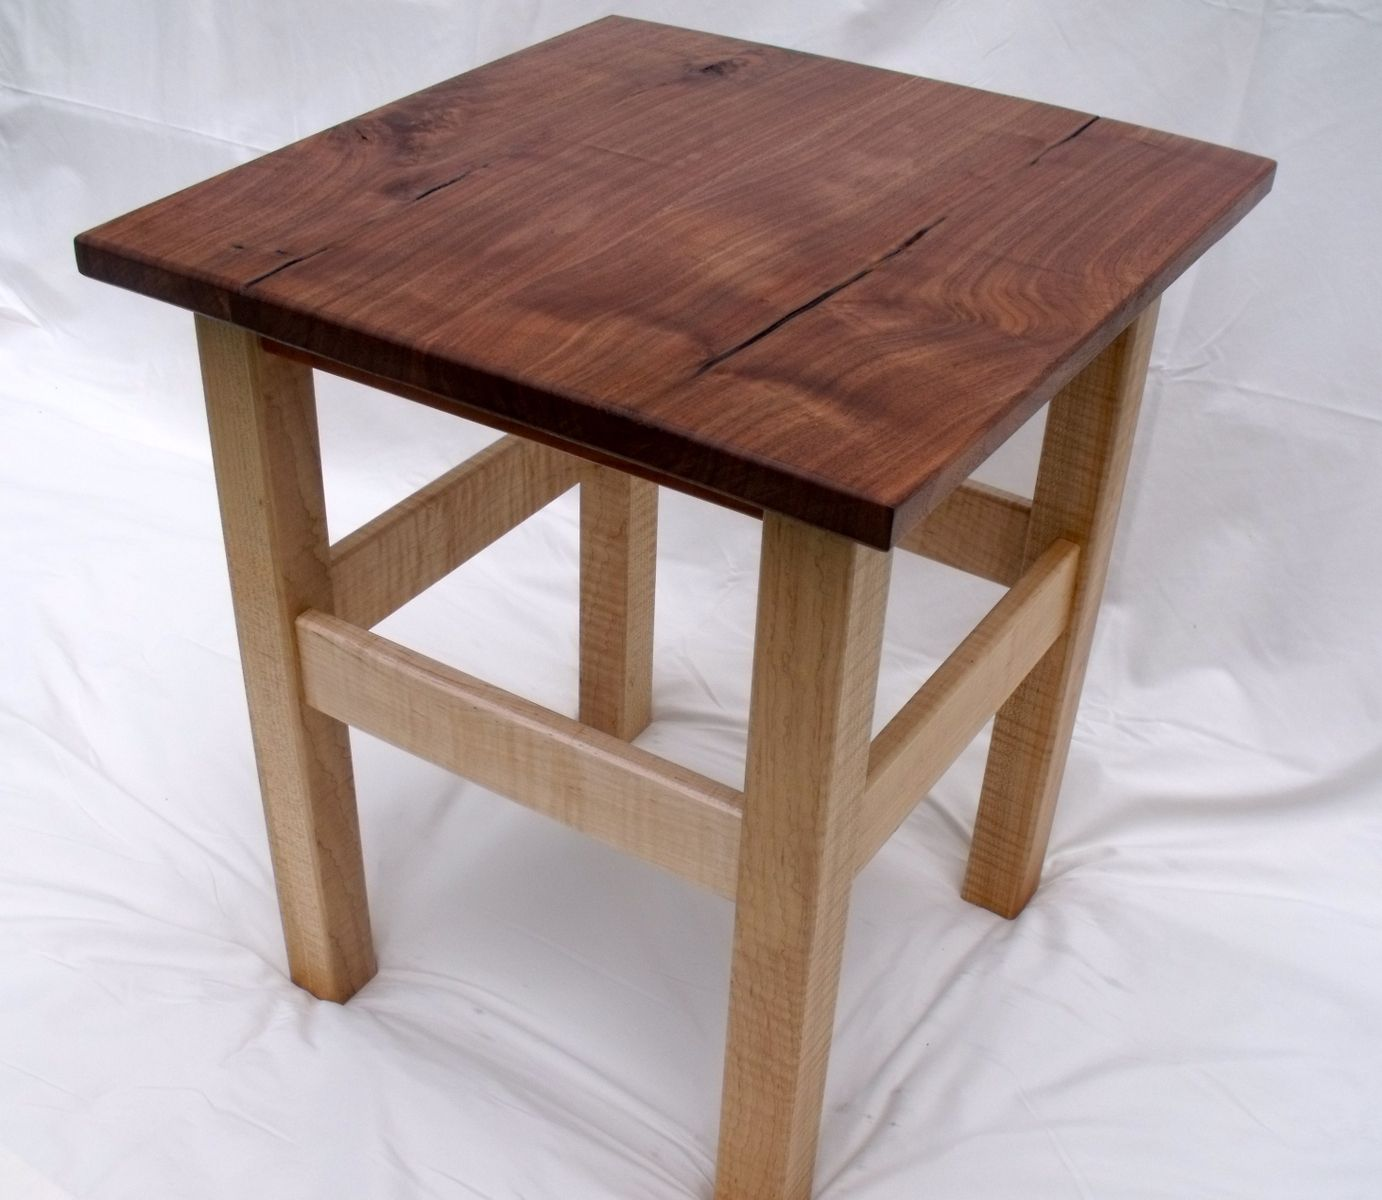 custom end table of walnut wild cherry and flame maple by  - custom made end table of walnut wild cherry and flame maple